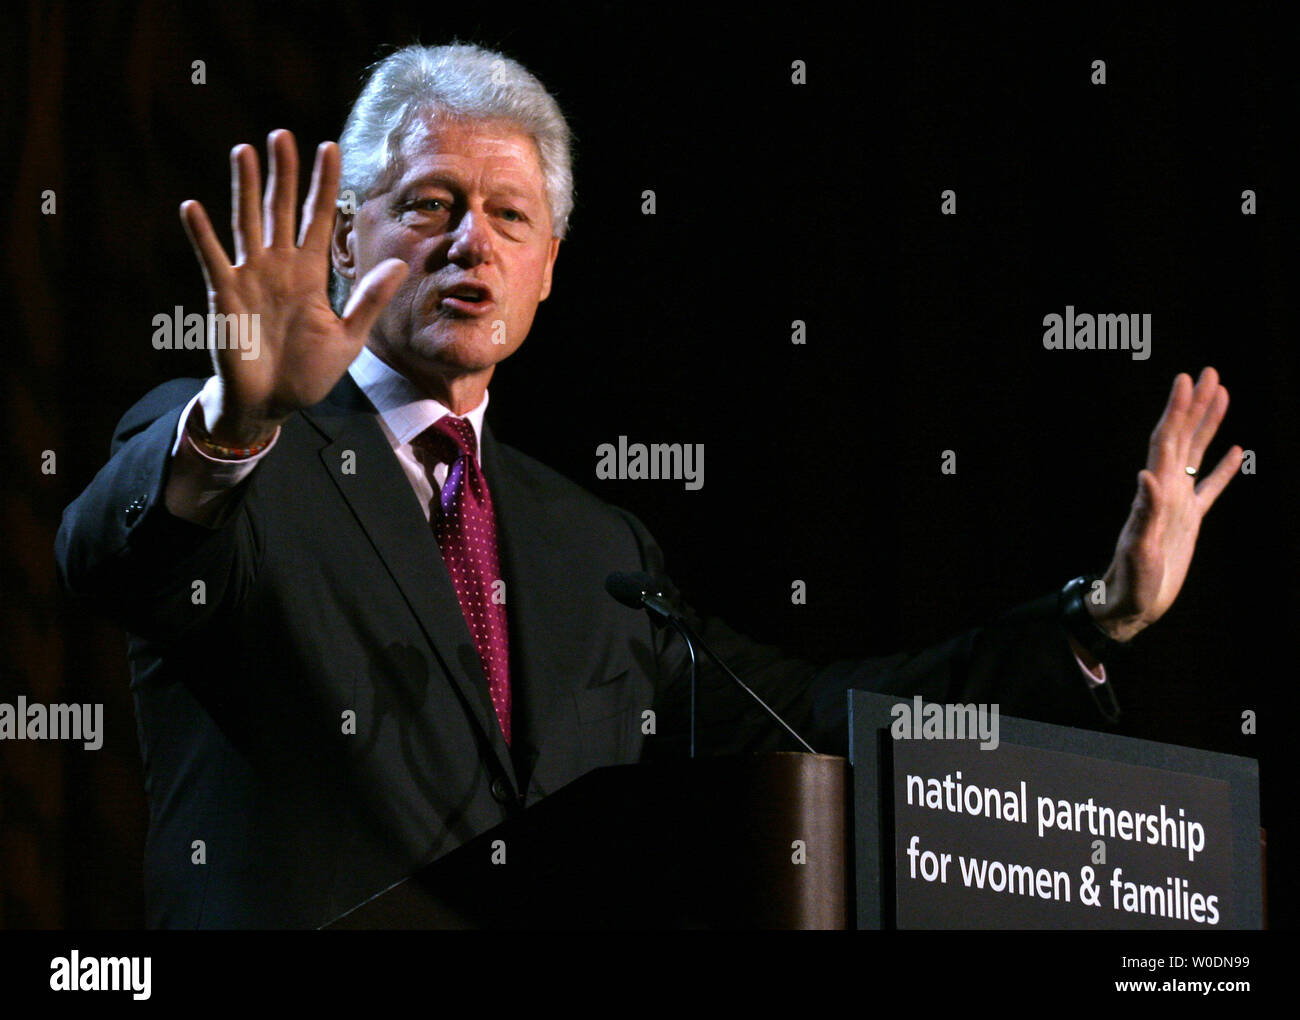 Former U.S. President Bill Clinton speaks at the National Partnership for Women and Families annual lunchin in Washington on June 15, 2007. Clinton touched on topics such as health care, minimum wage, insurance, education, and current events in the Gaza Strip.   (UPI Photo/Dominic Bracco II) - Stock Image